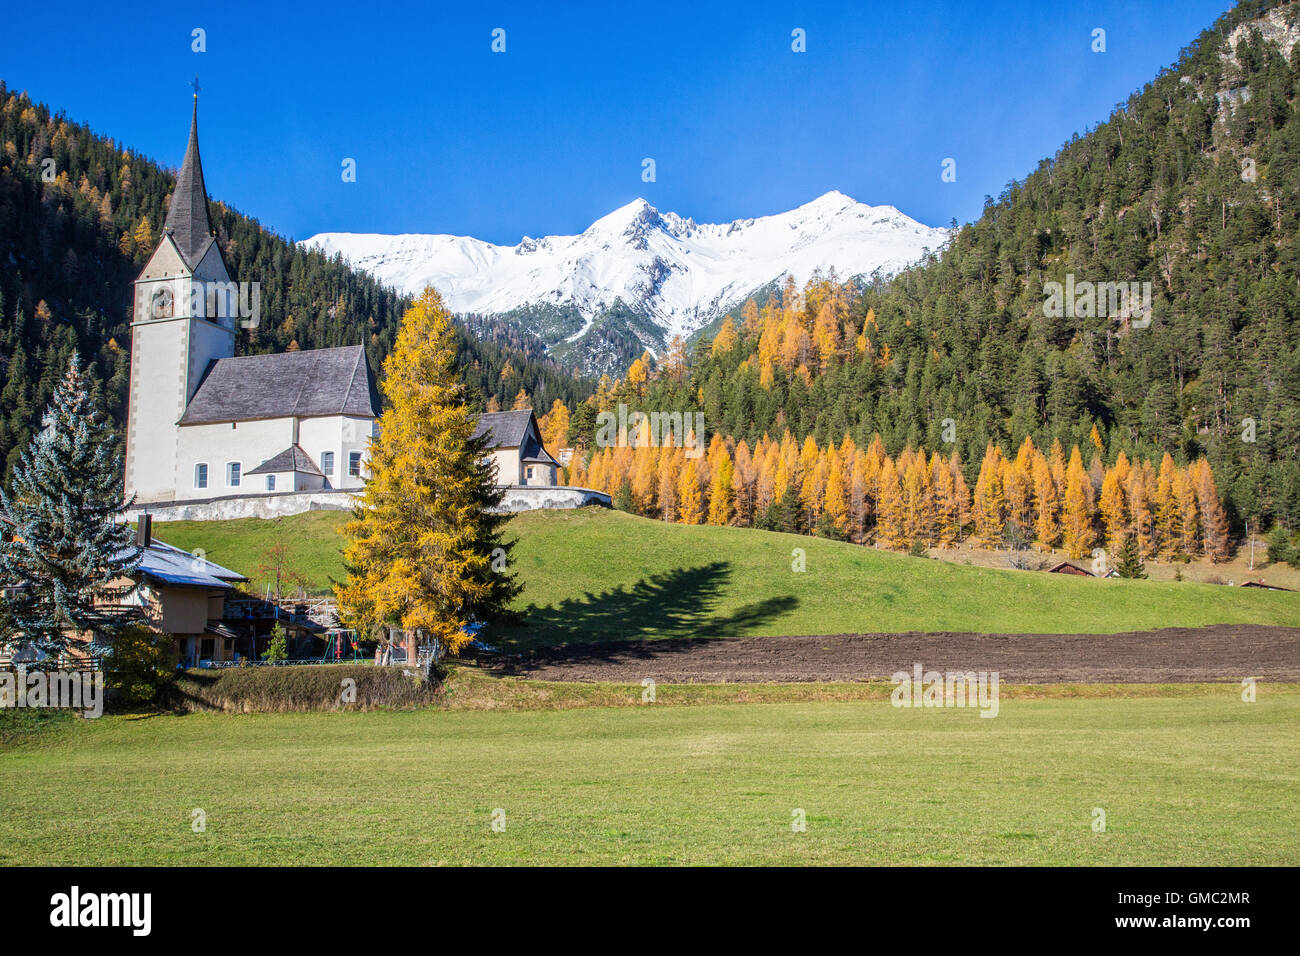 The church of Schmitten surrounded by colorful woods and snowy peaks Albula District Canton of Graubünden Switzerland Stock Photo